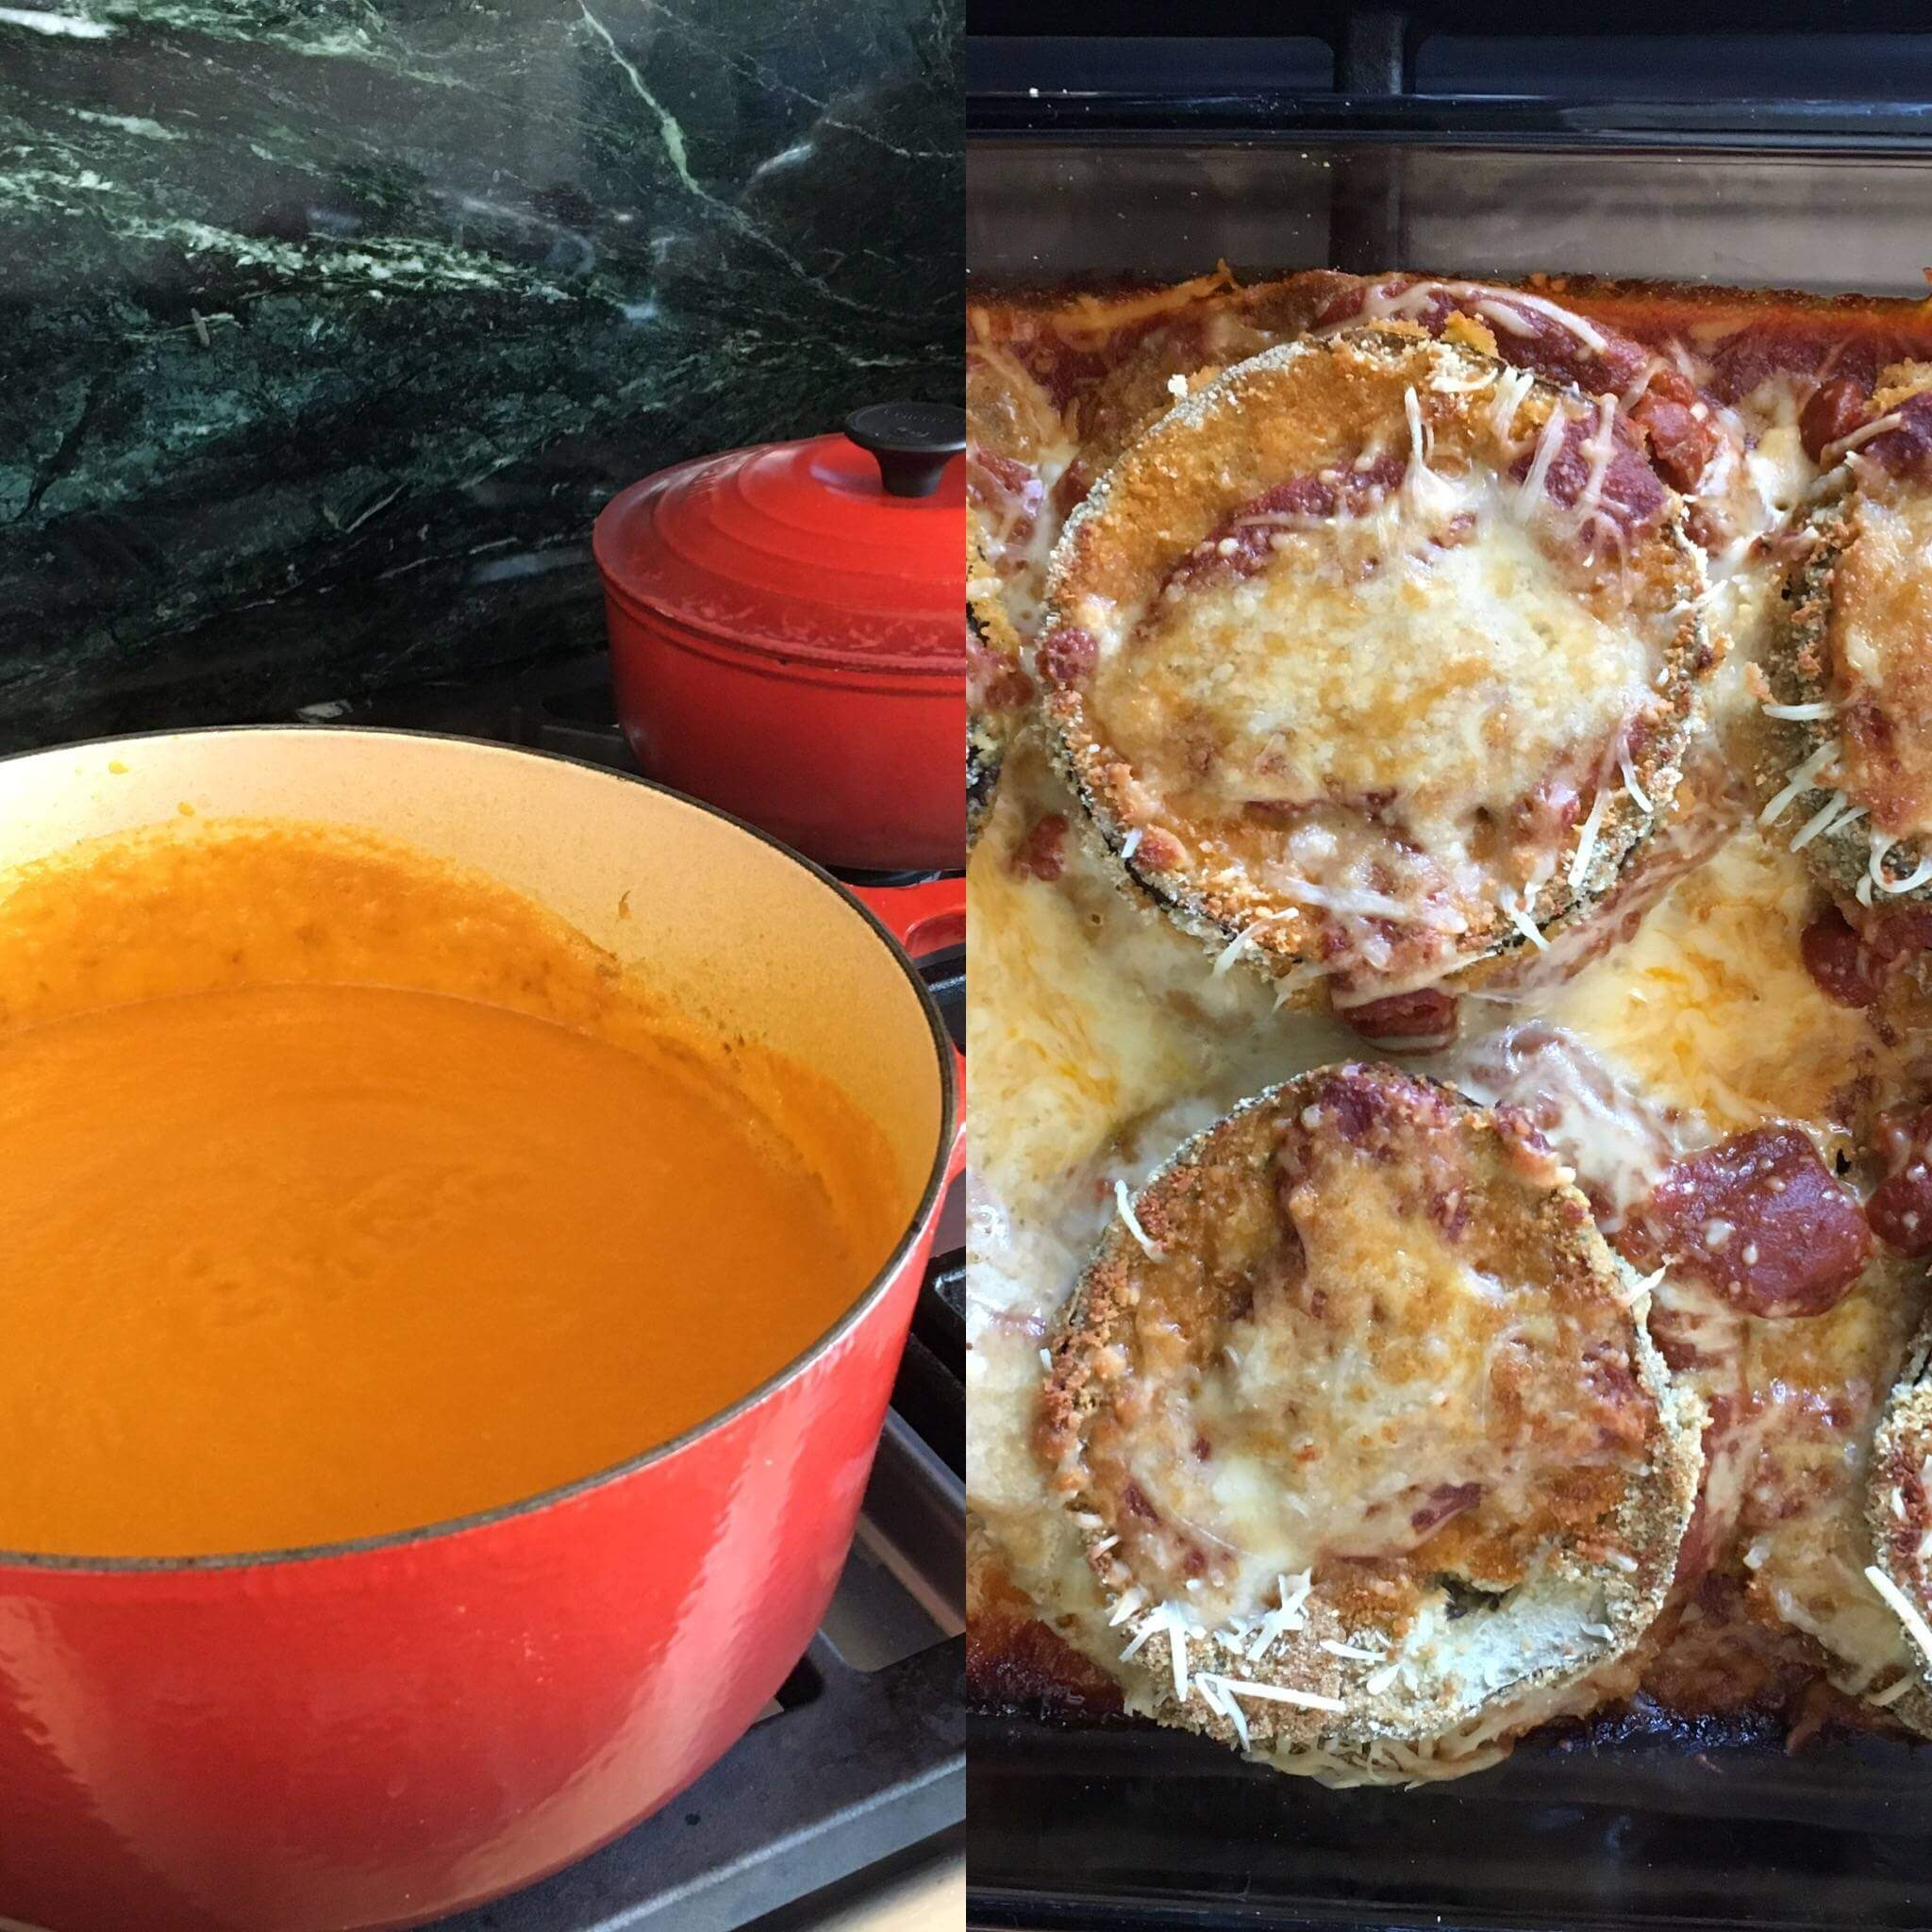 Weekly Recipe Round-Up: Carrot Soup and Eggplant Parmesan